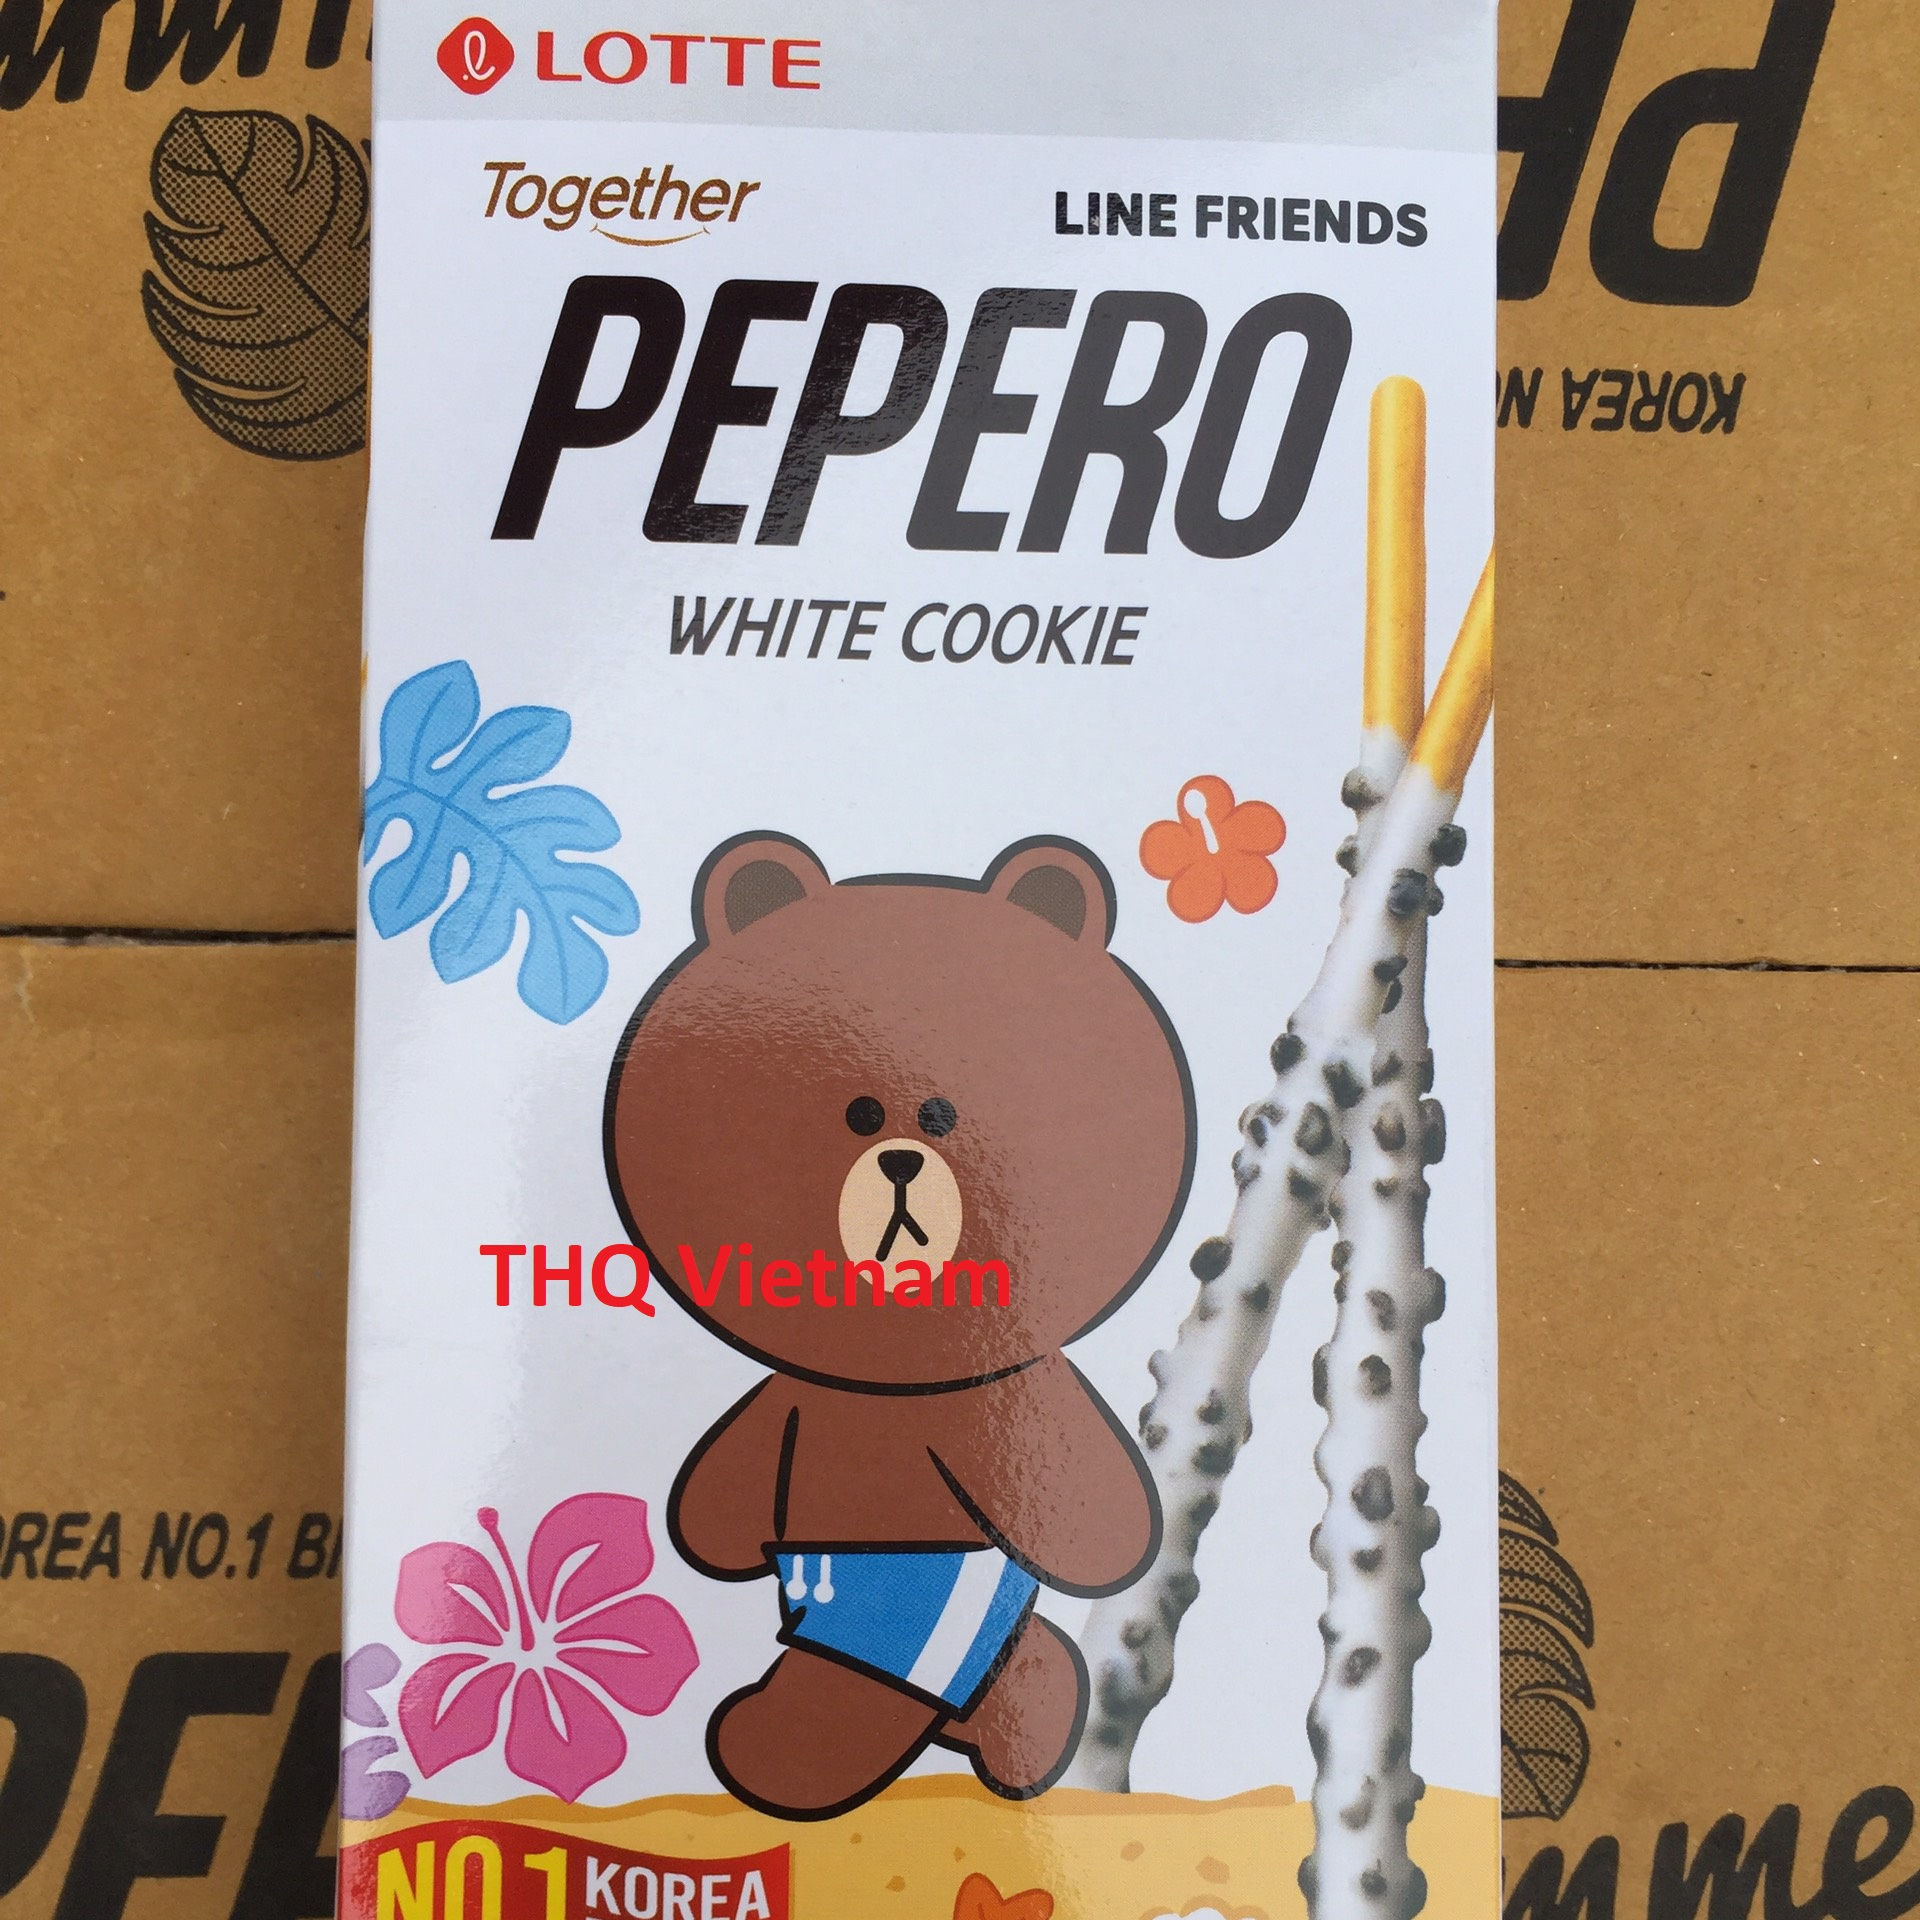 [THQ VIETNAM] PEPERO COOKIE STICK-almendra/<span class=keywords><strong>galleta</strong></span> Blanco/<span class=keywords><strong>CHOCOLATE</strong></span> 36GR * 40